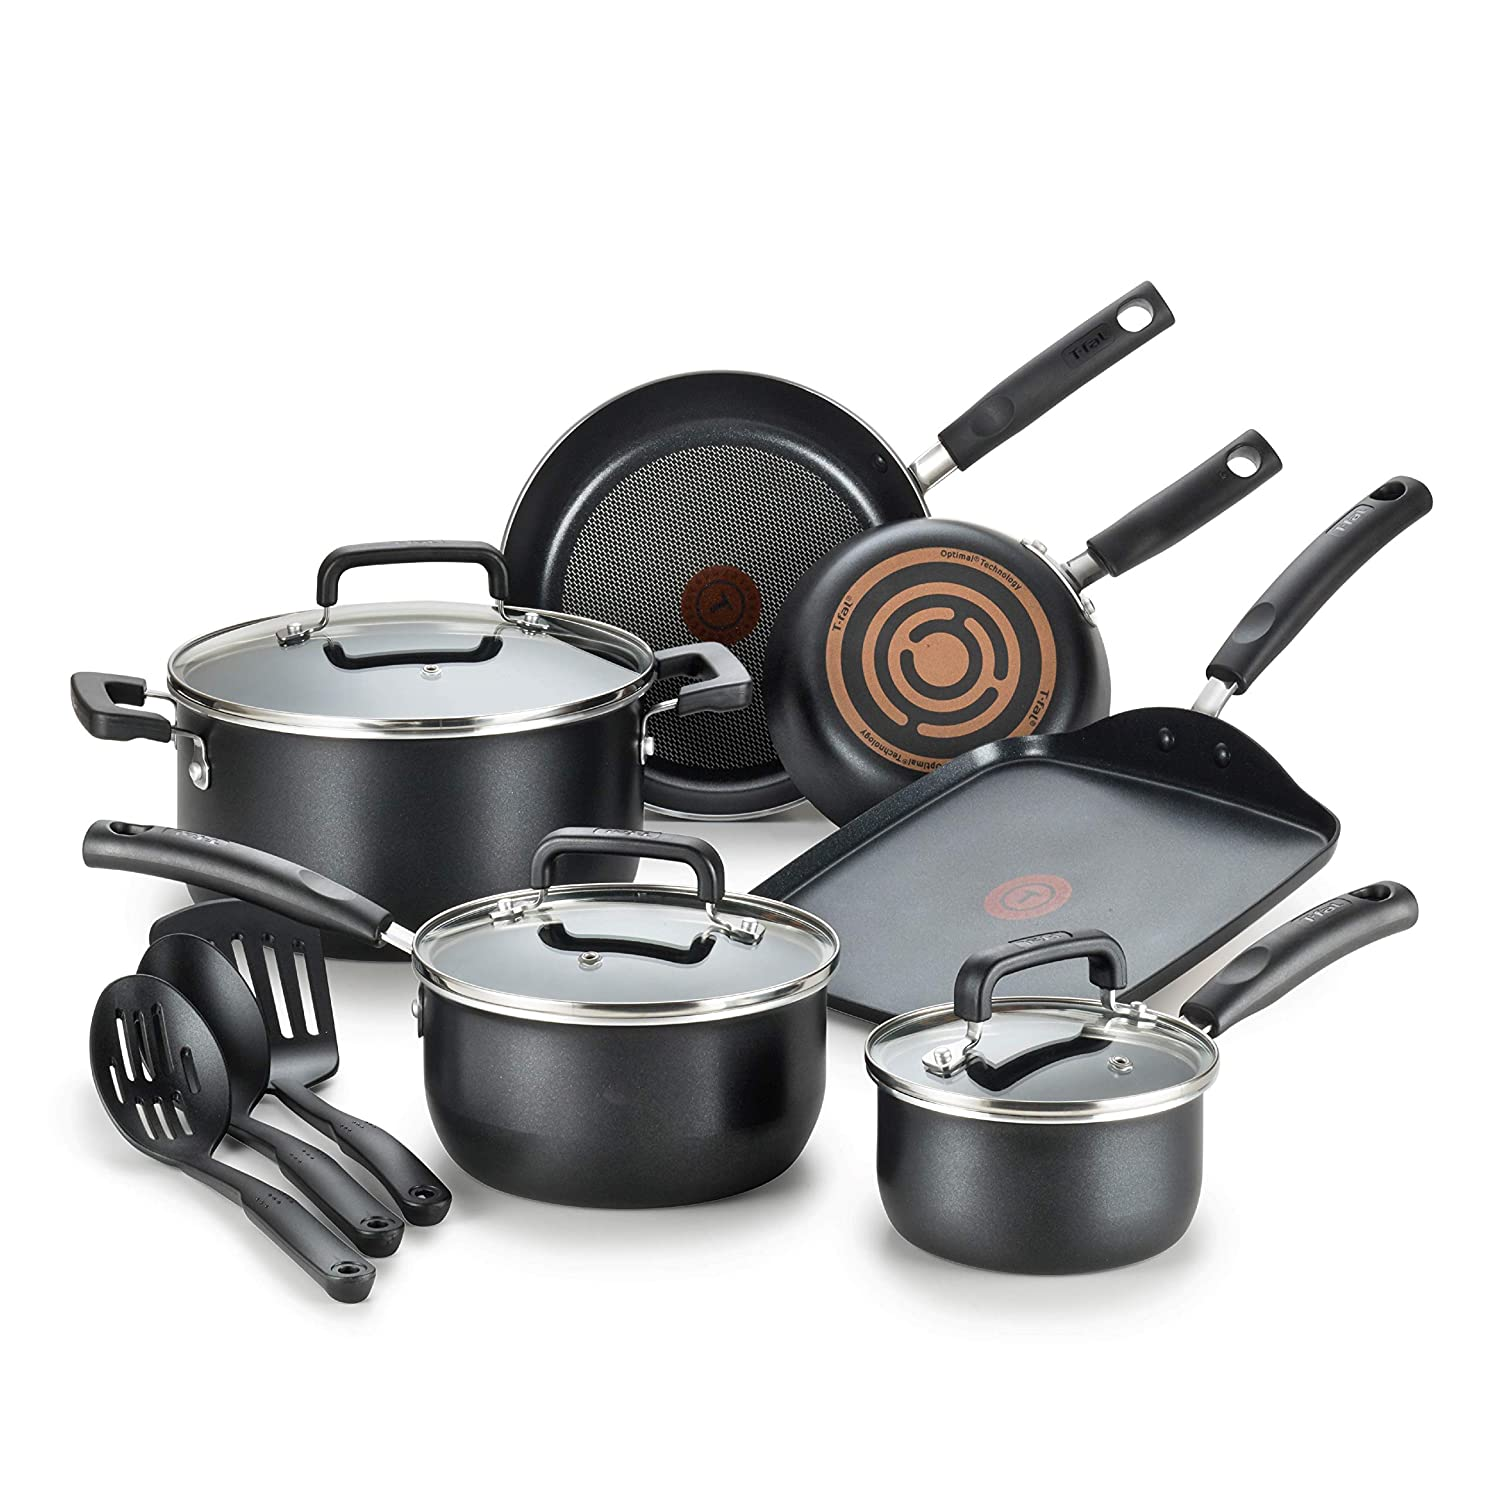 Top 10 Best Ceramic Cookware (2020 Reviews & Buying Guide) 1